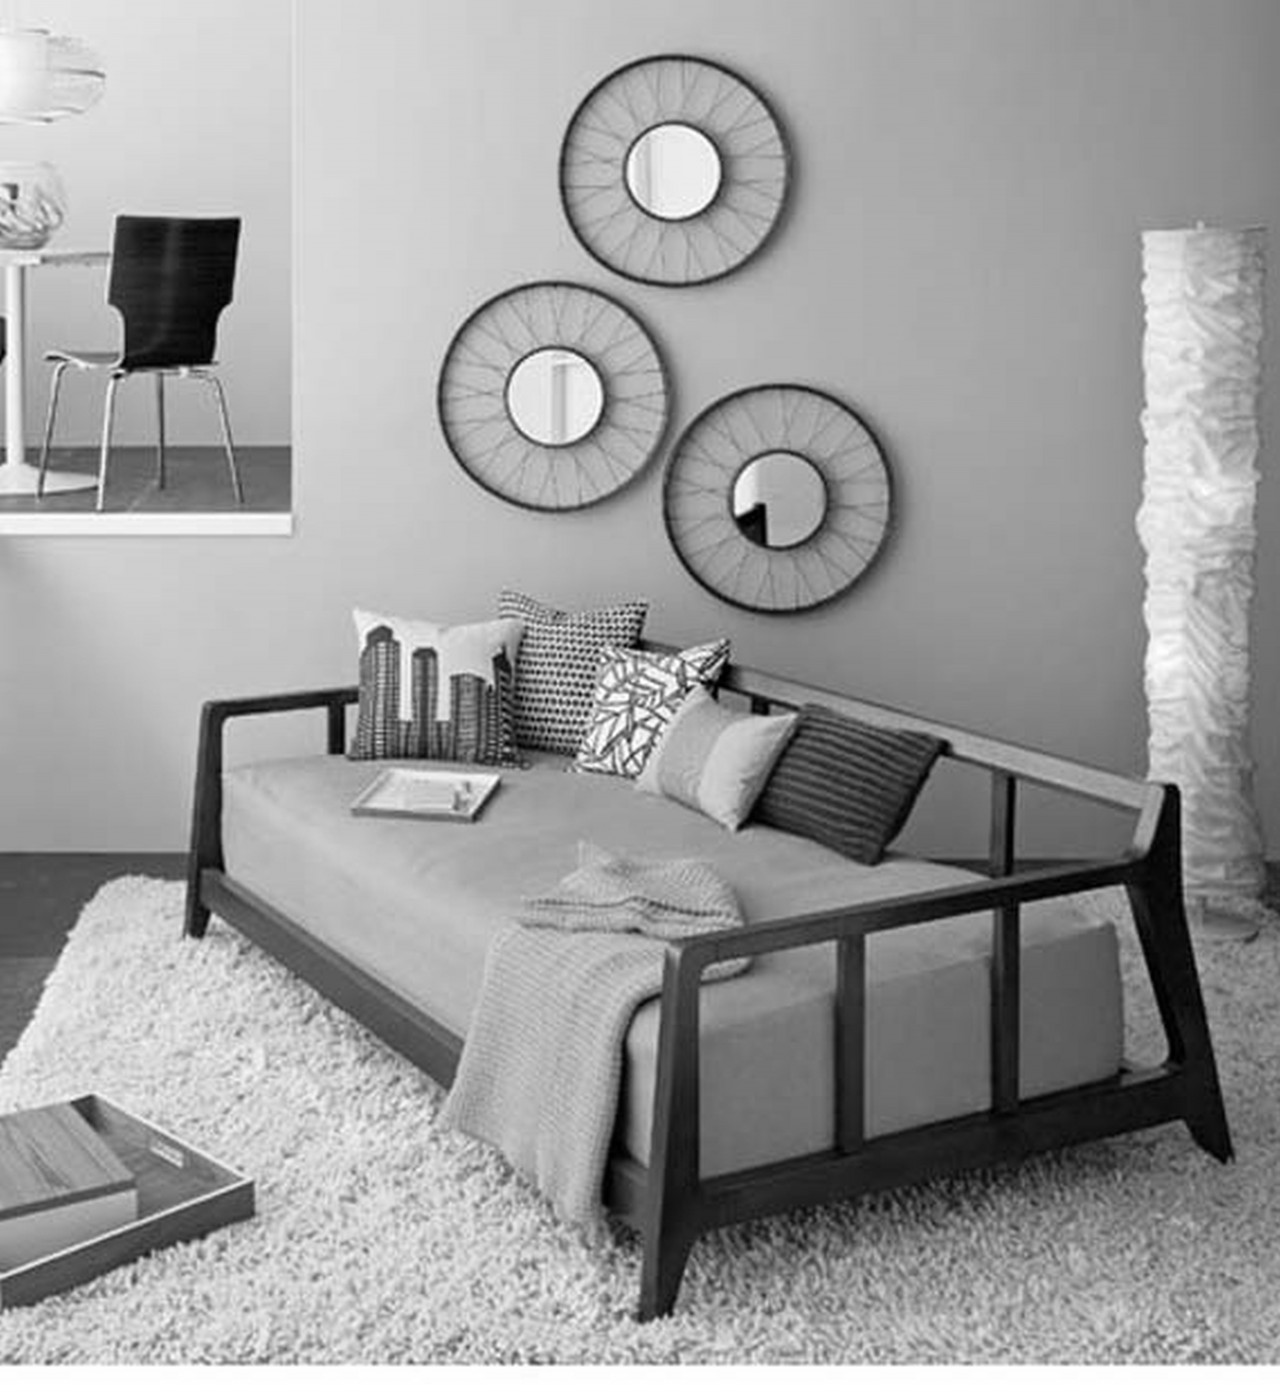 Sheffield Home Mirrors Simplest Way To Give Lux And Aestehtic Values In Your Rooms Homesfeed